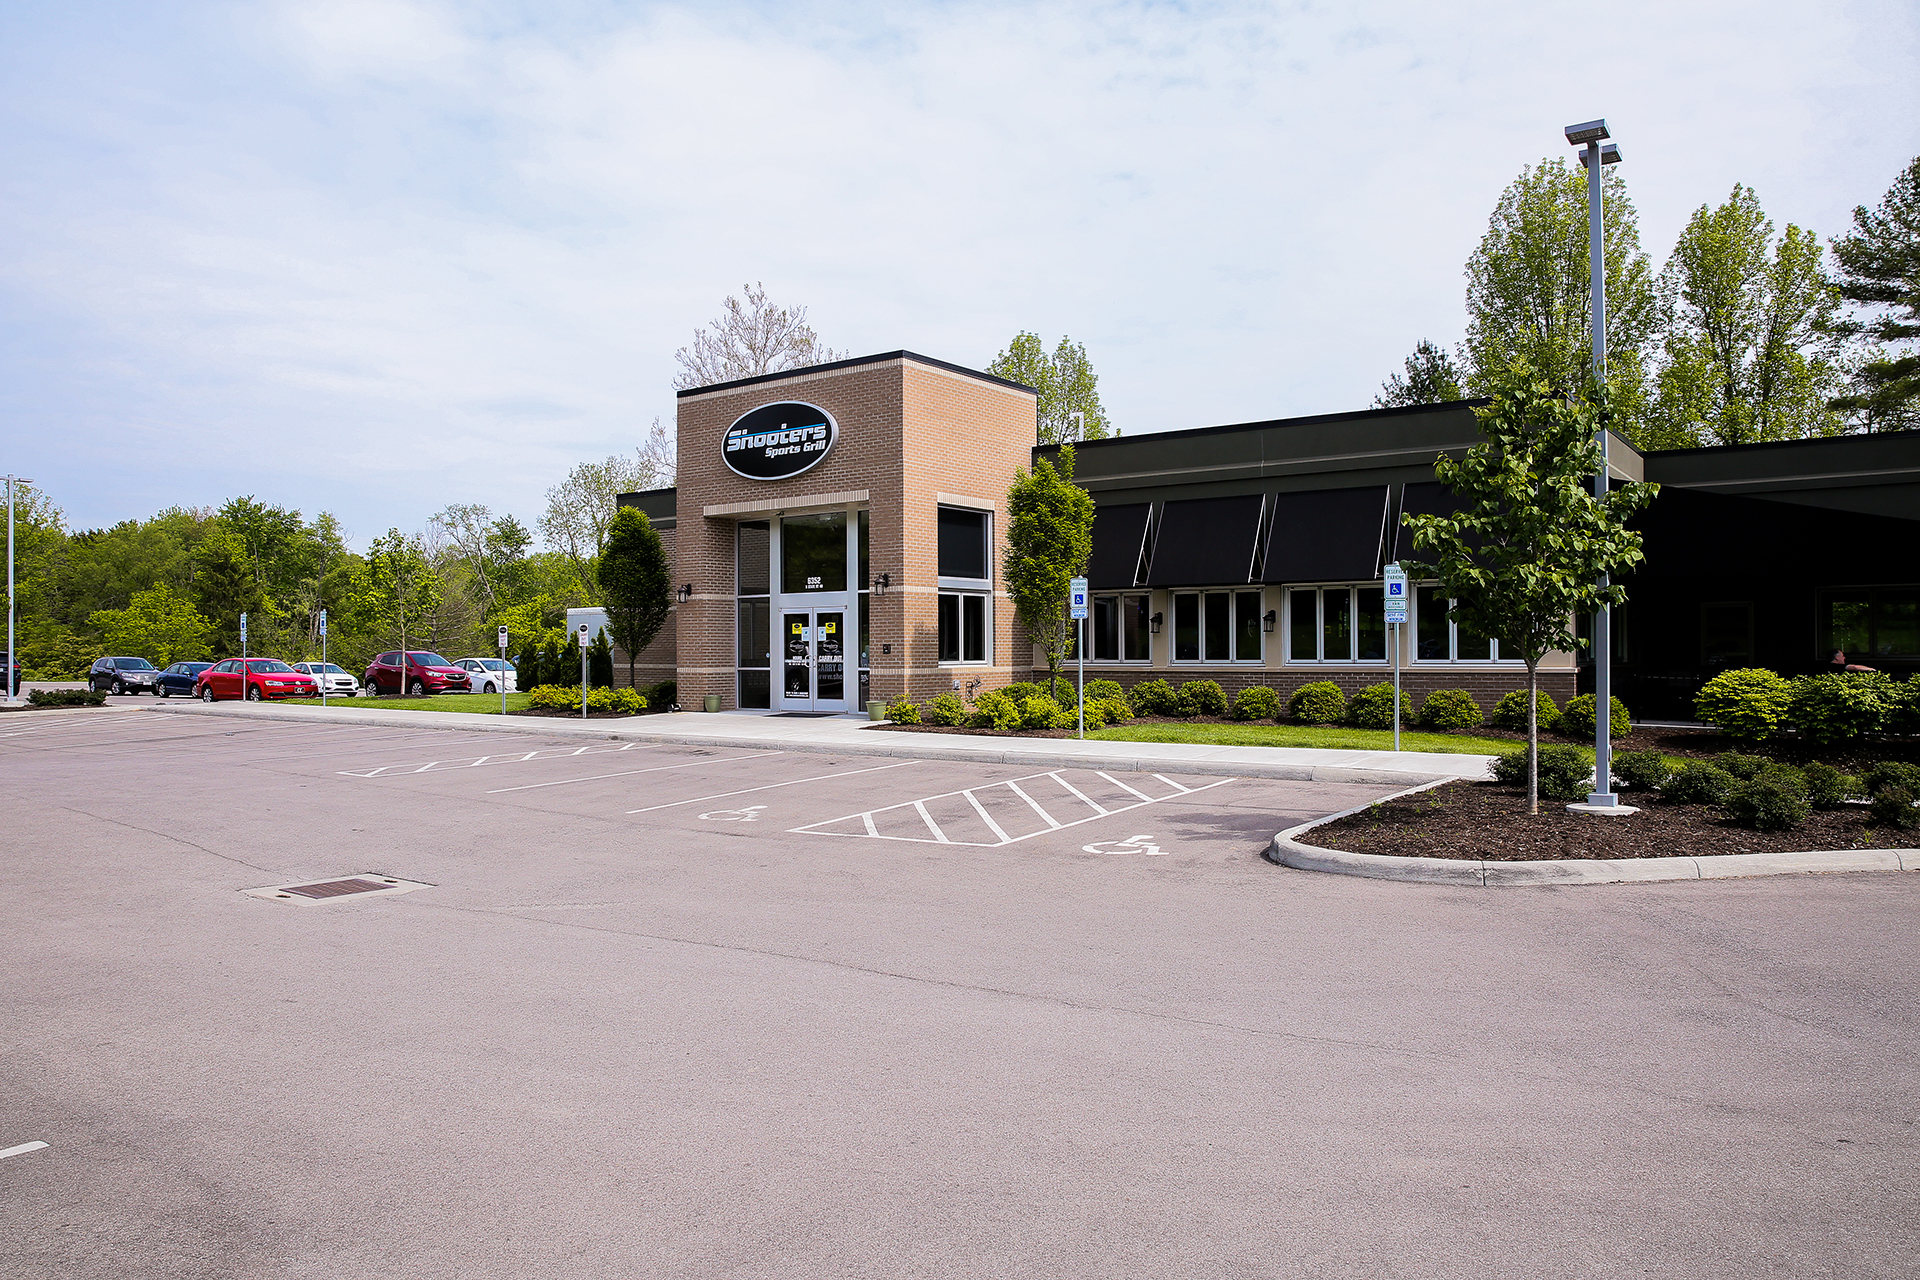 external view of the Shooters building and parking lot